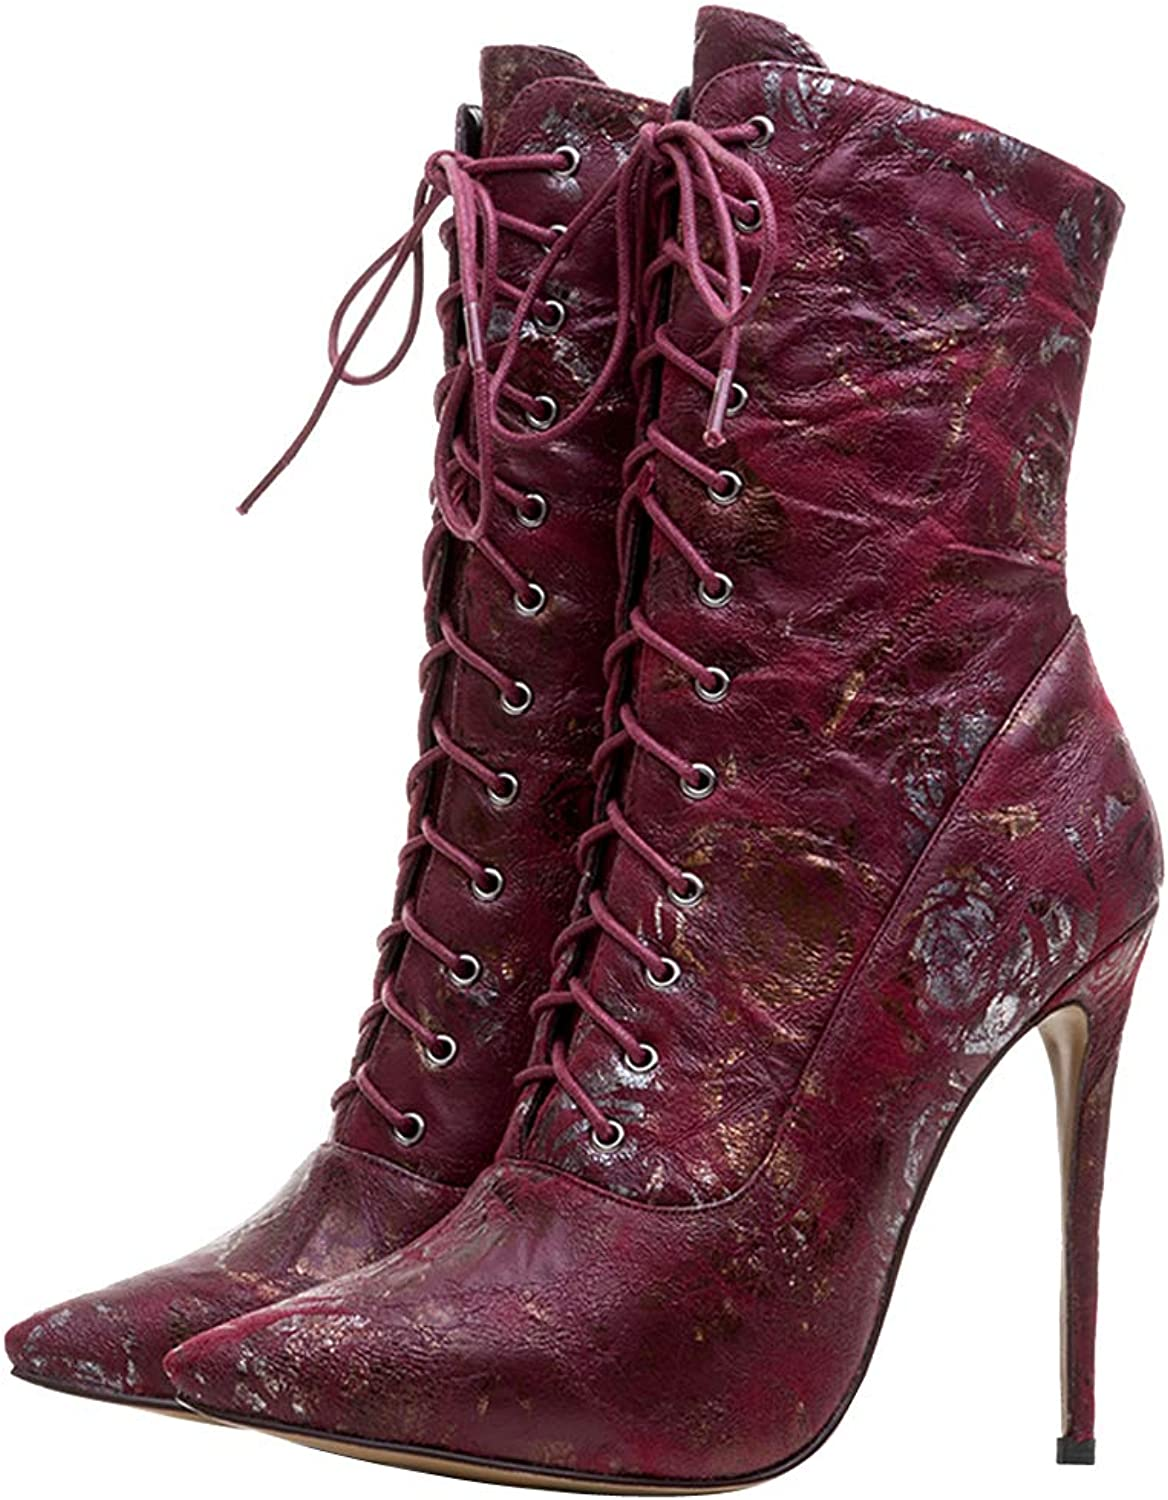 Themost Womens Ankle Boots,Lace Up High Heel Boot Winter Pointed Toe Booties pink